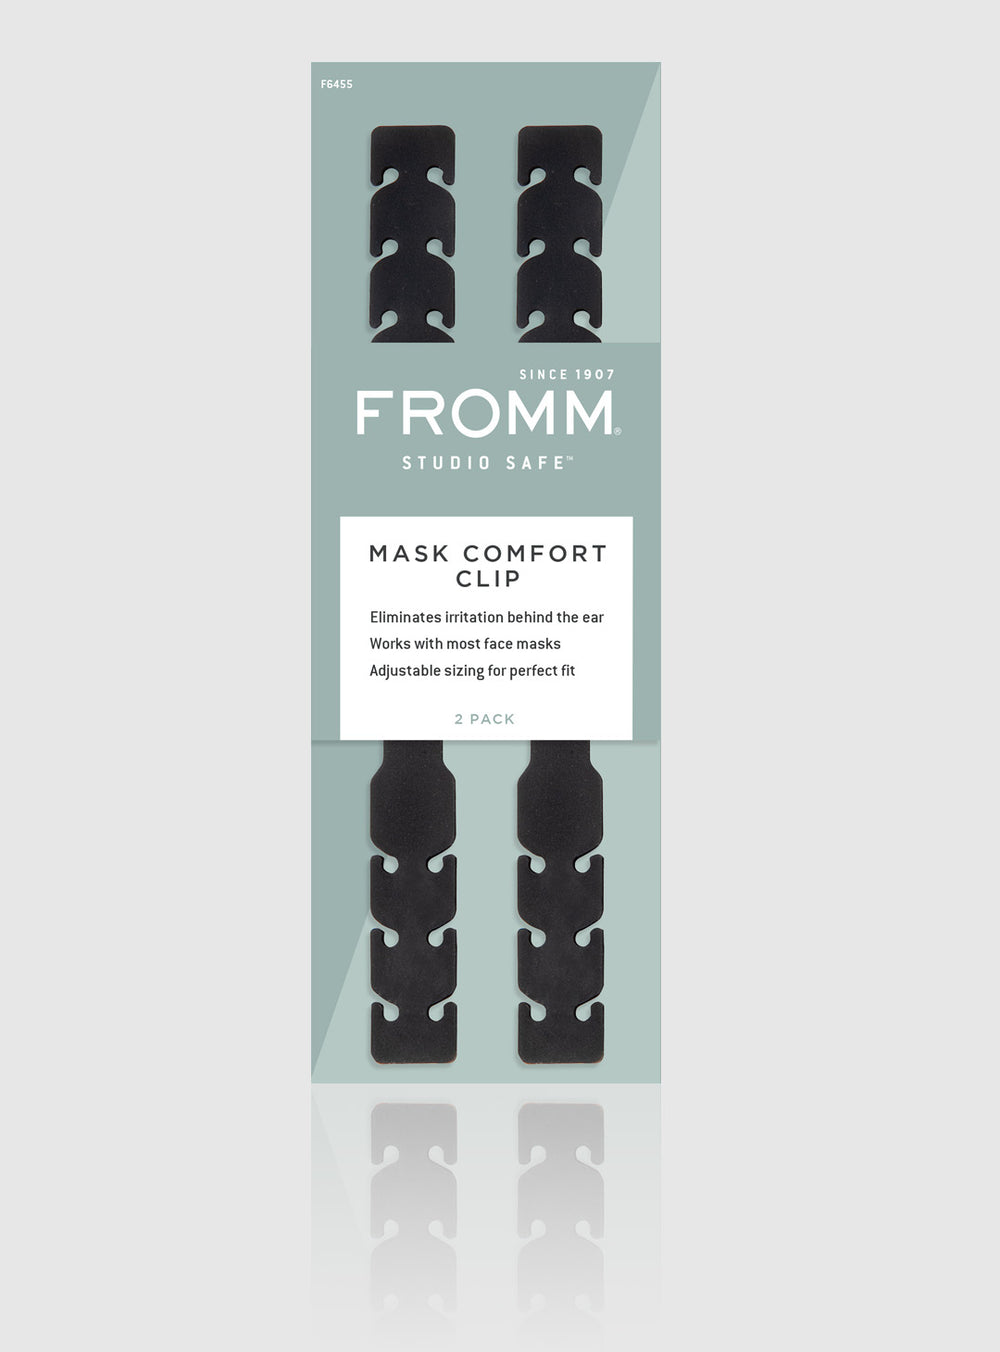 Fromm Pro Professional Salon Face Mask Comfort Extender Clips in packaging